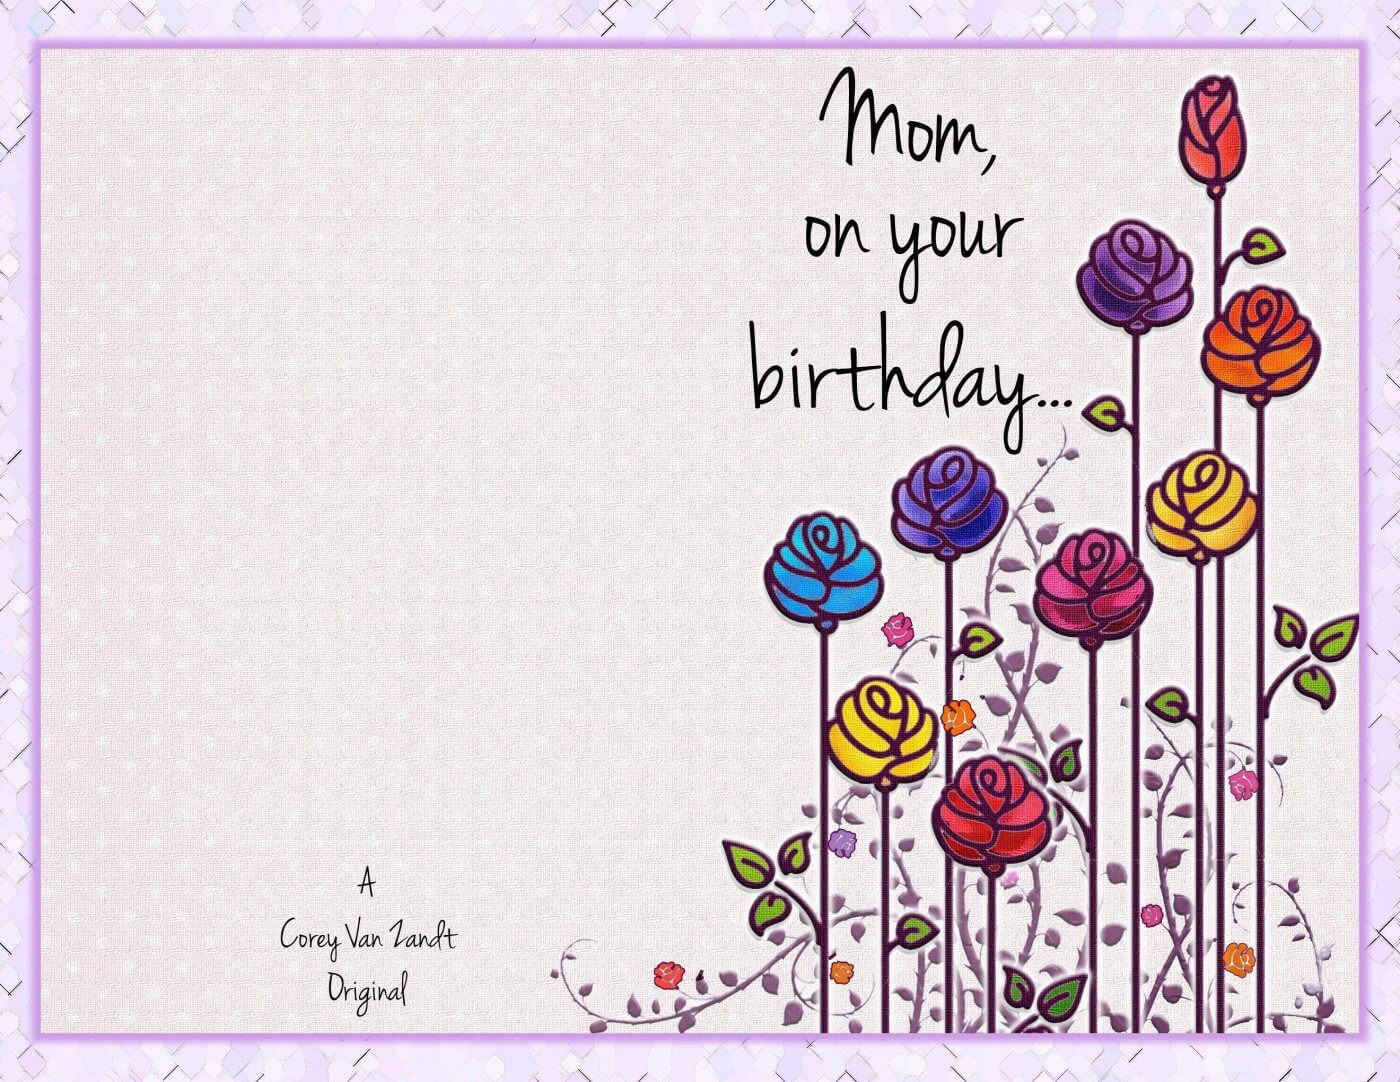 Mom Birthday Card Template | Theveliger With Regard To Mom Birthday Card Template